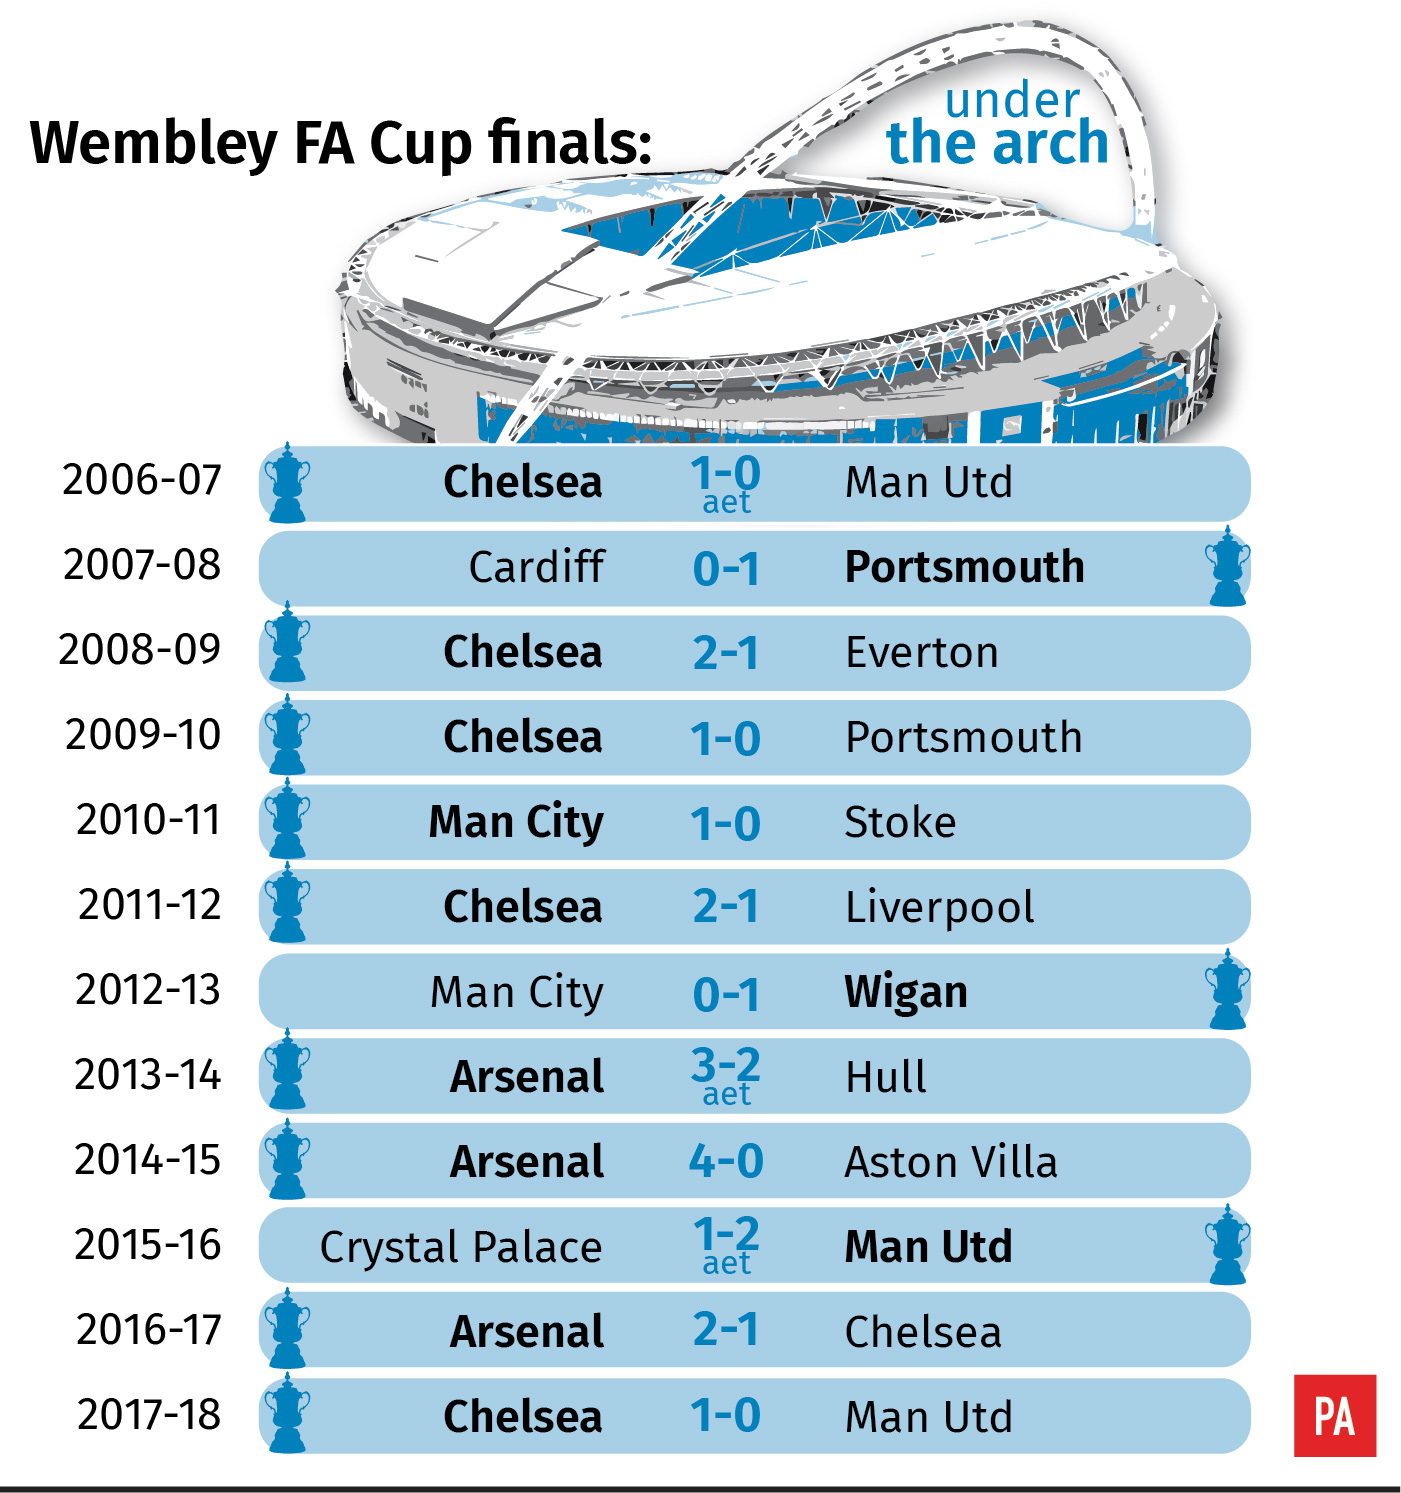 FA Cup finals since return to Wembley